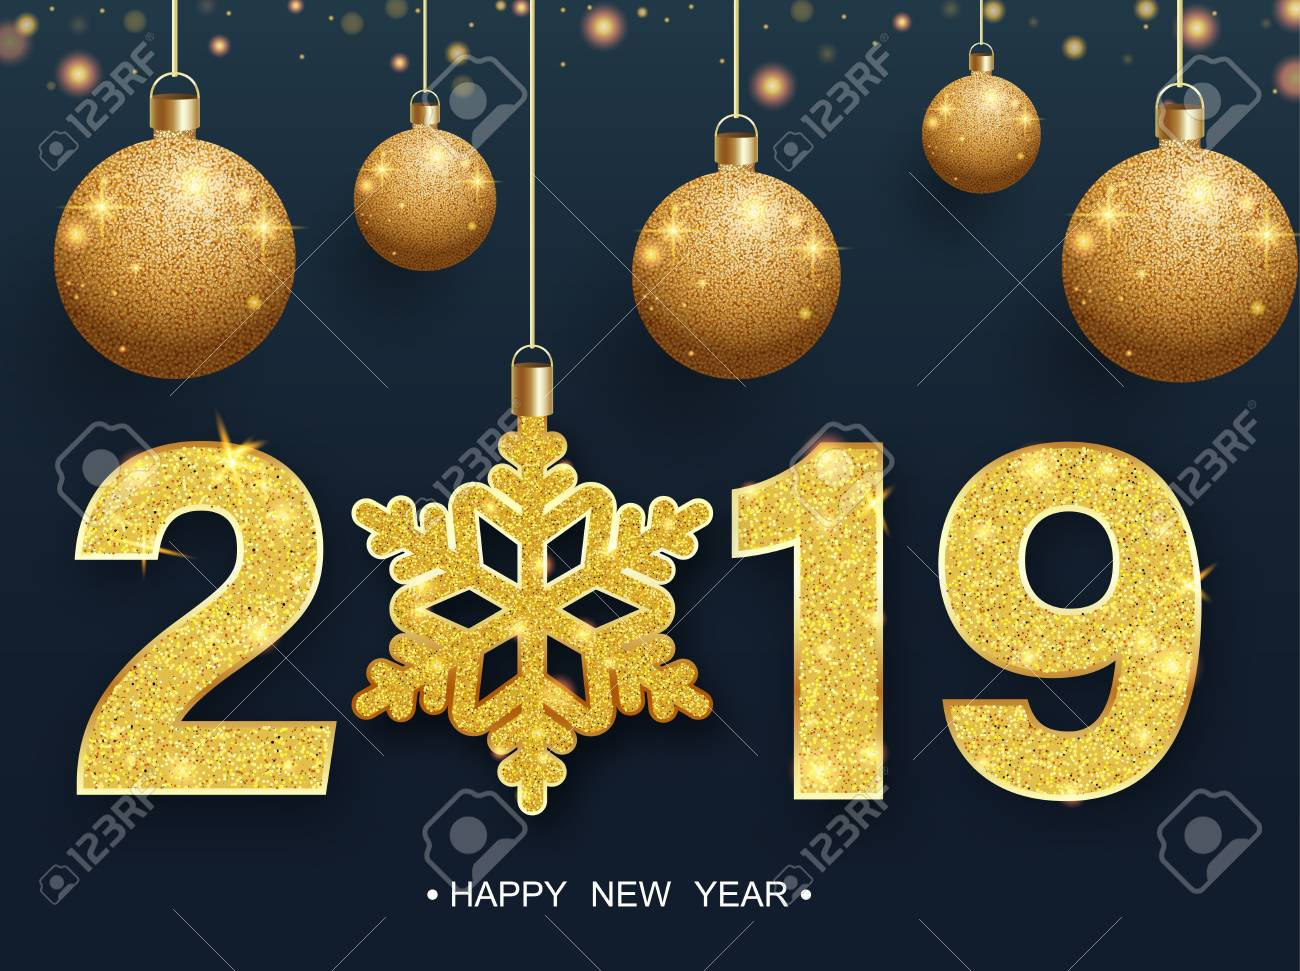 Happy New Year 2019 poster with golden Christmas balls and snowflake. Vector background. - 127702063